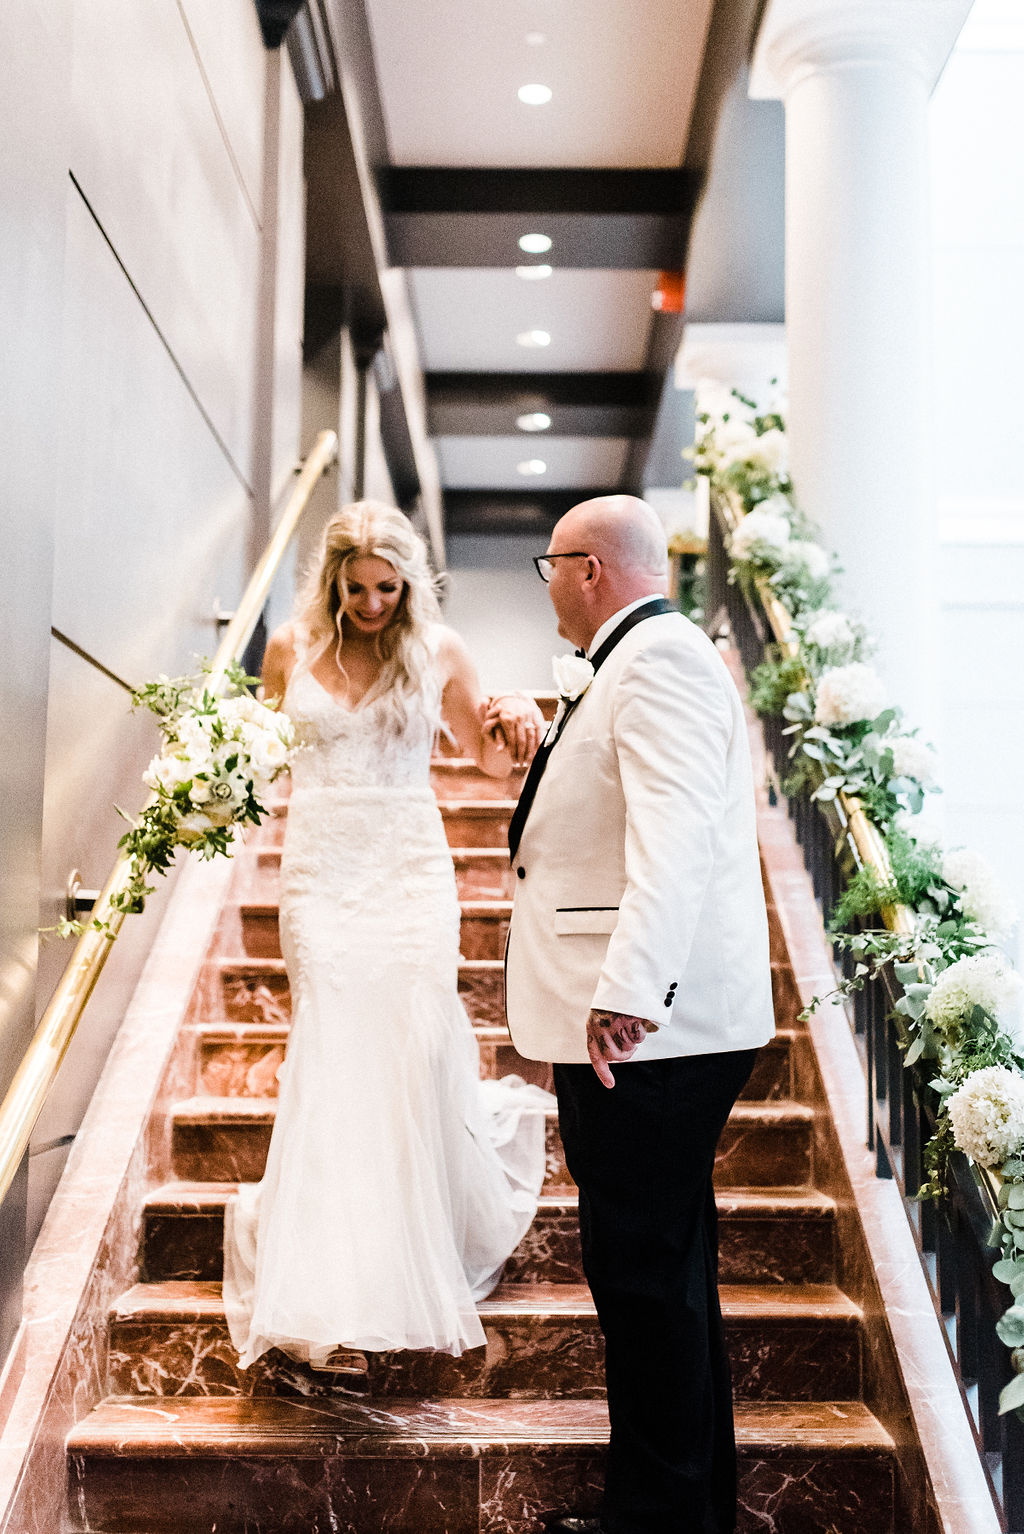 Groom assists his bride down the staircase surrounded by lush greenery into the ballroom - Pearl Weddings & Events